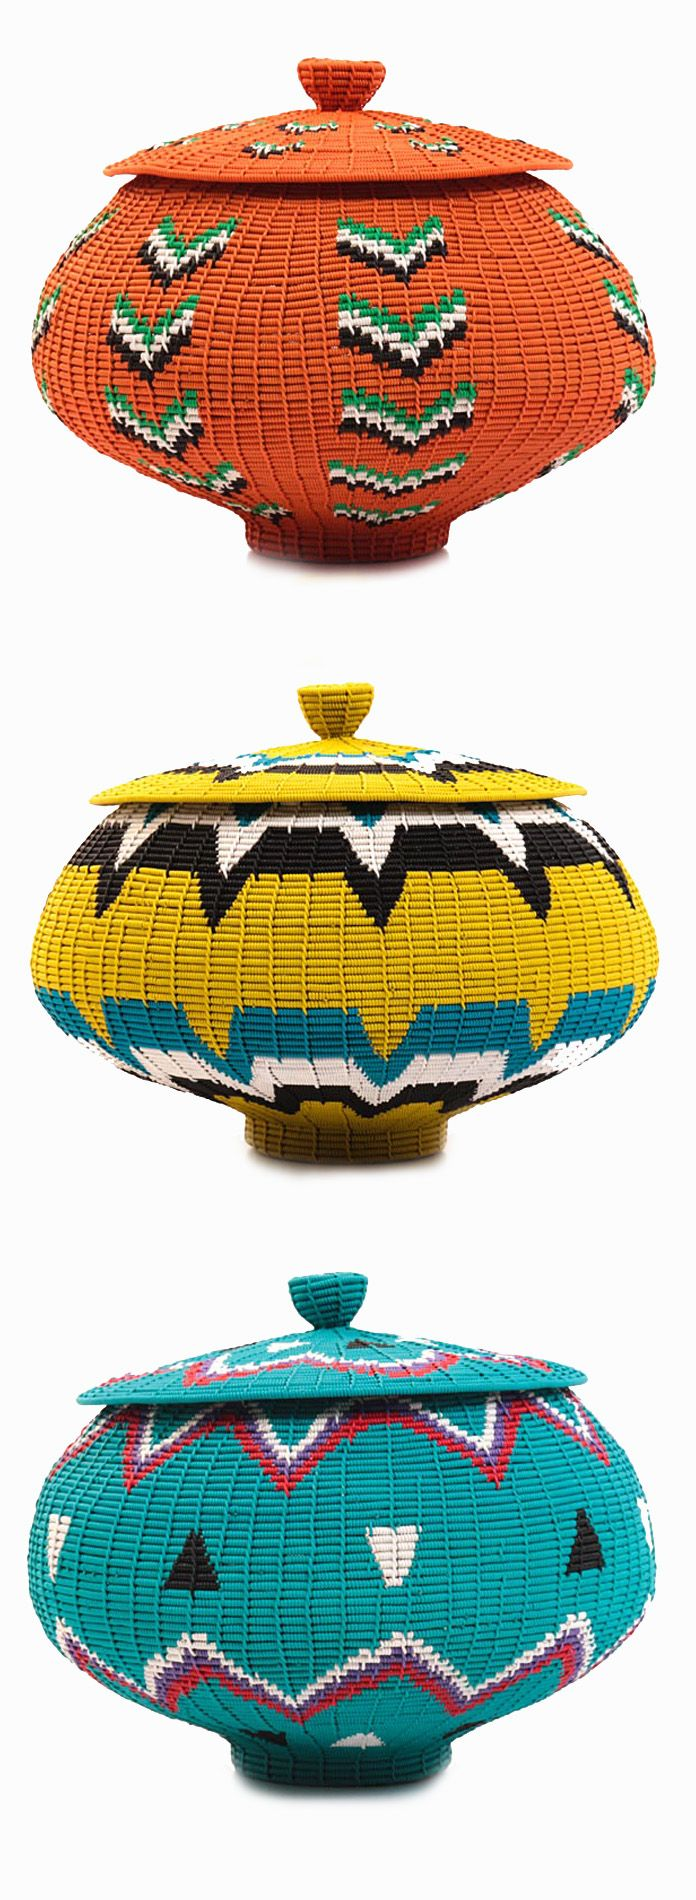 Africa | 3 Kambas with lids (pots) made by master weaver Alfred Ntuli, an inventive coil method wire weaver in South Africa.